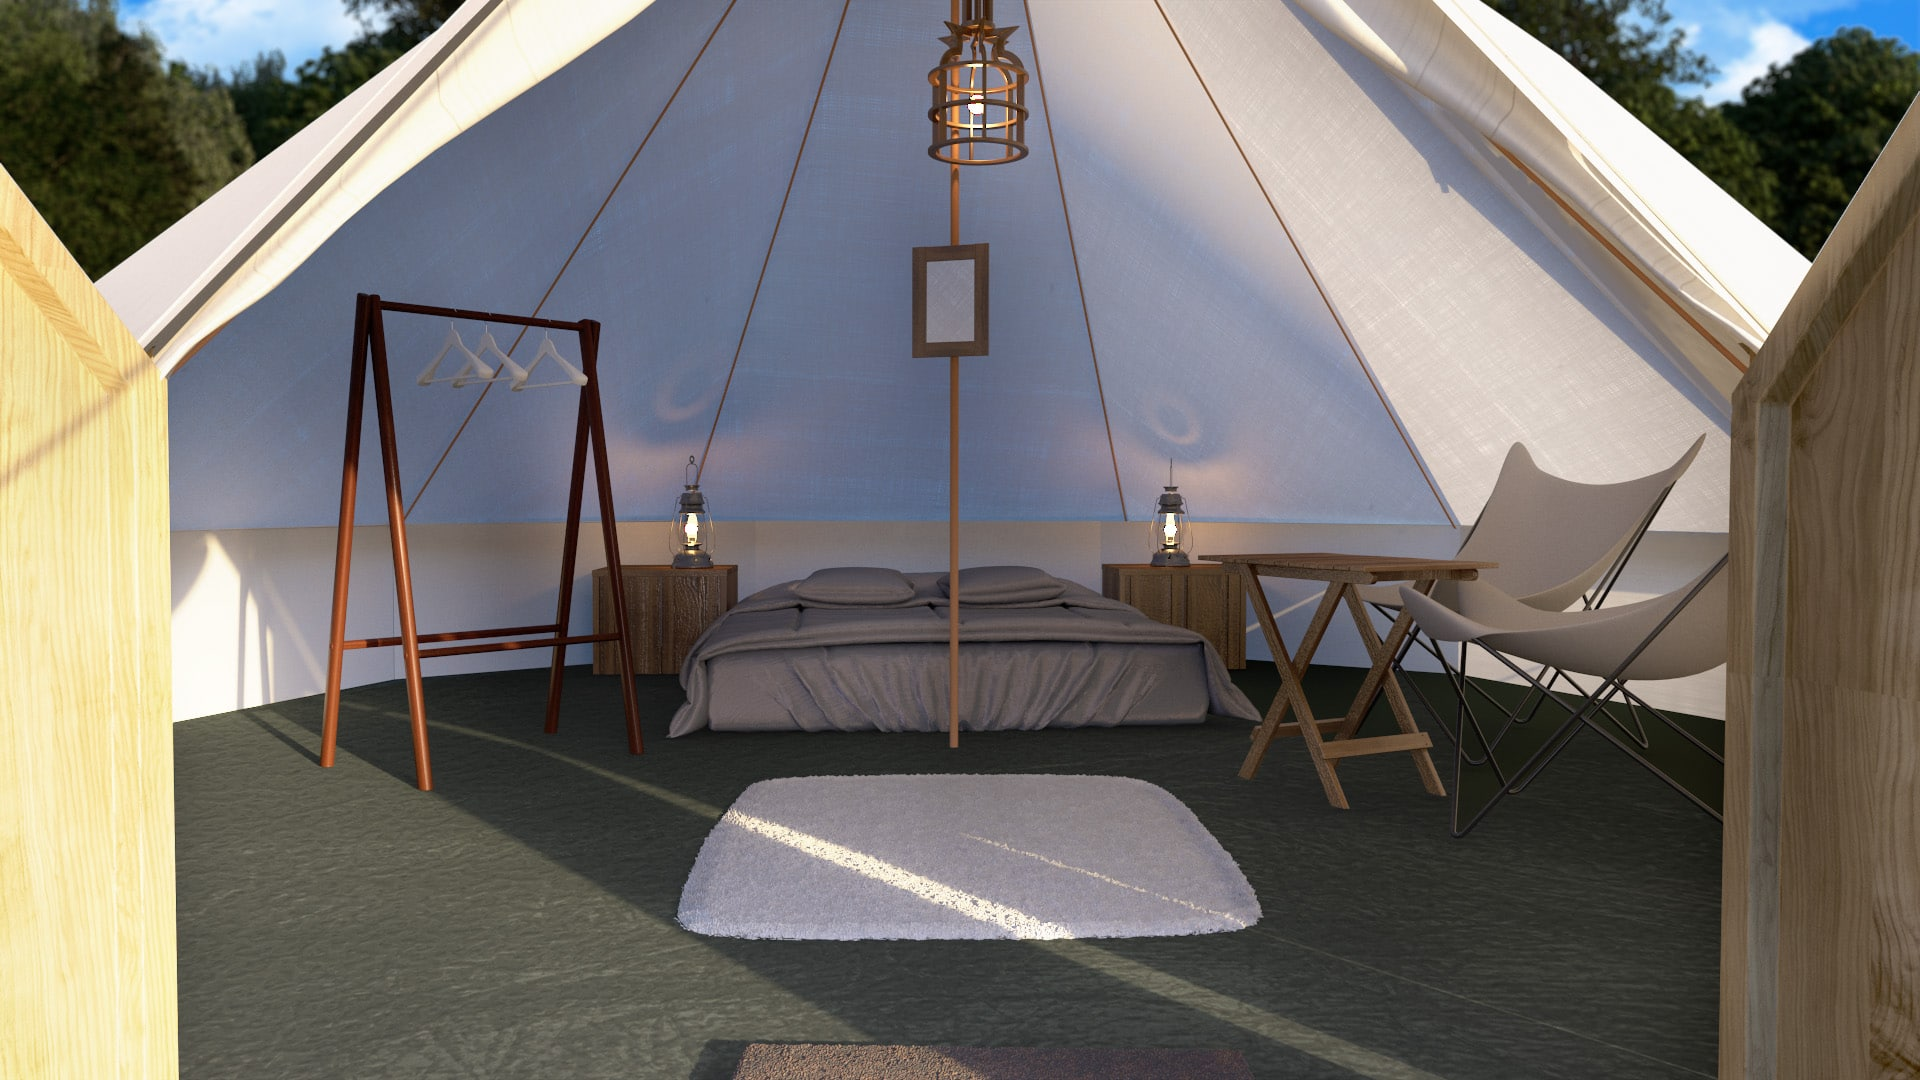 Battery Powered Vanity Light The Luxury Bell Tent - Festival Number 6